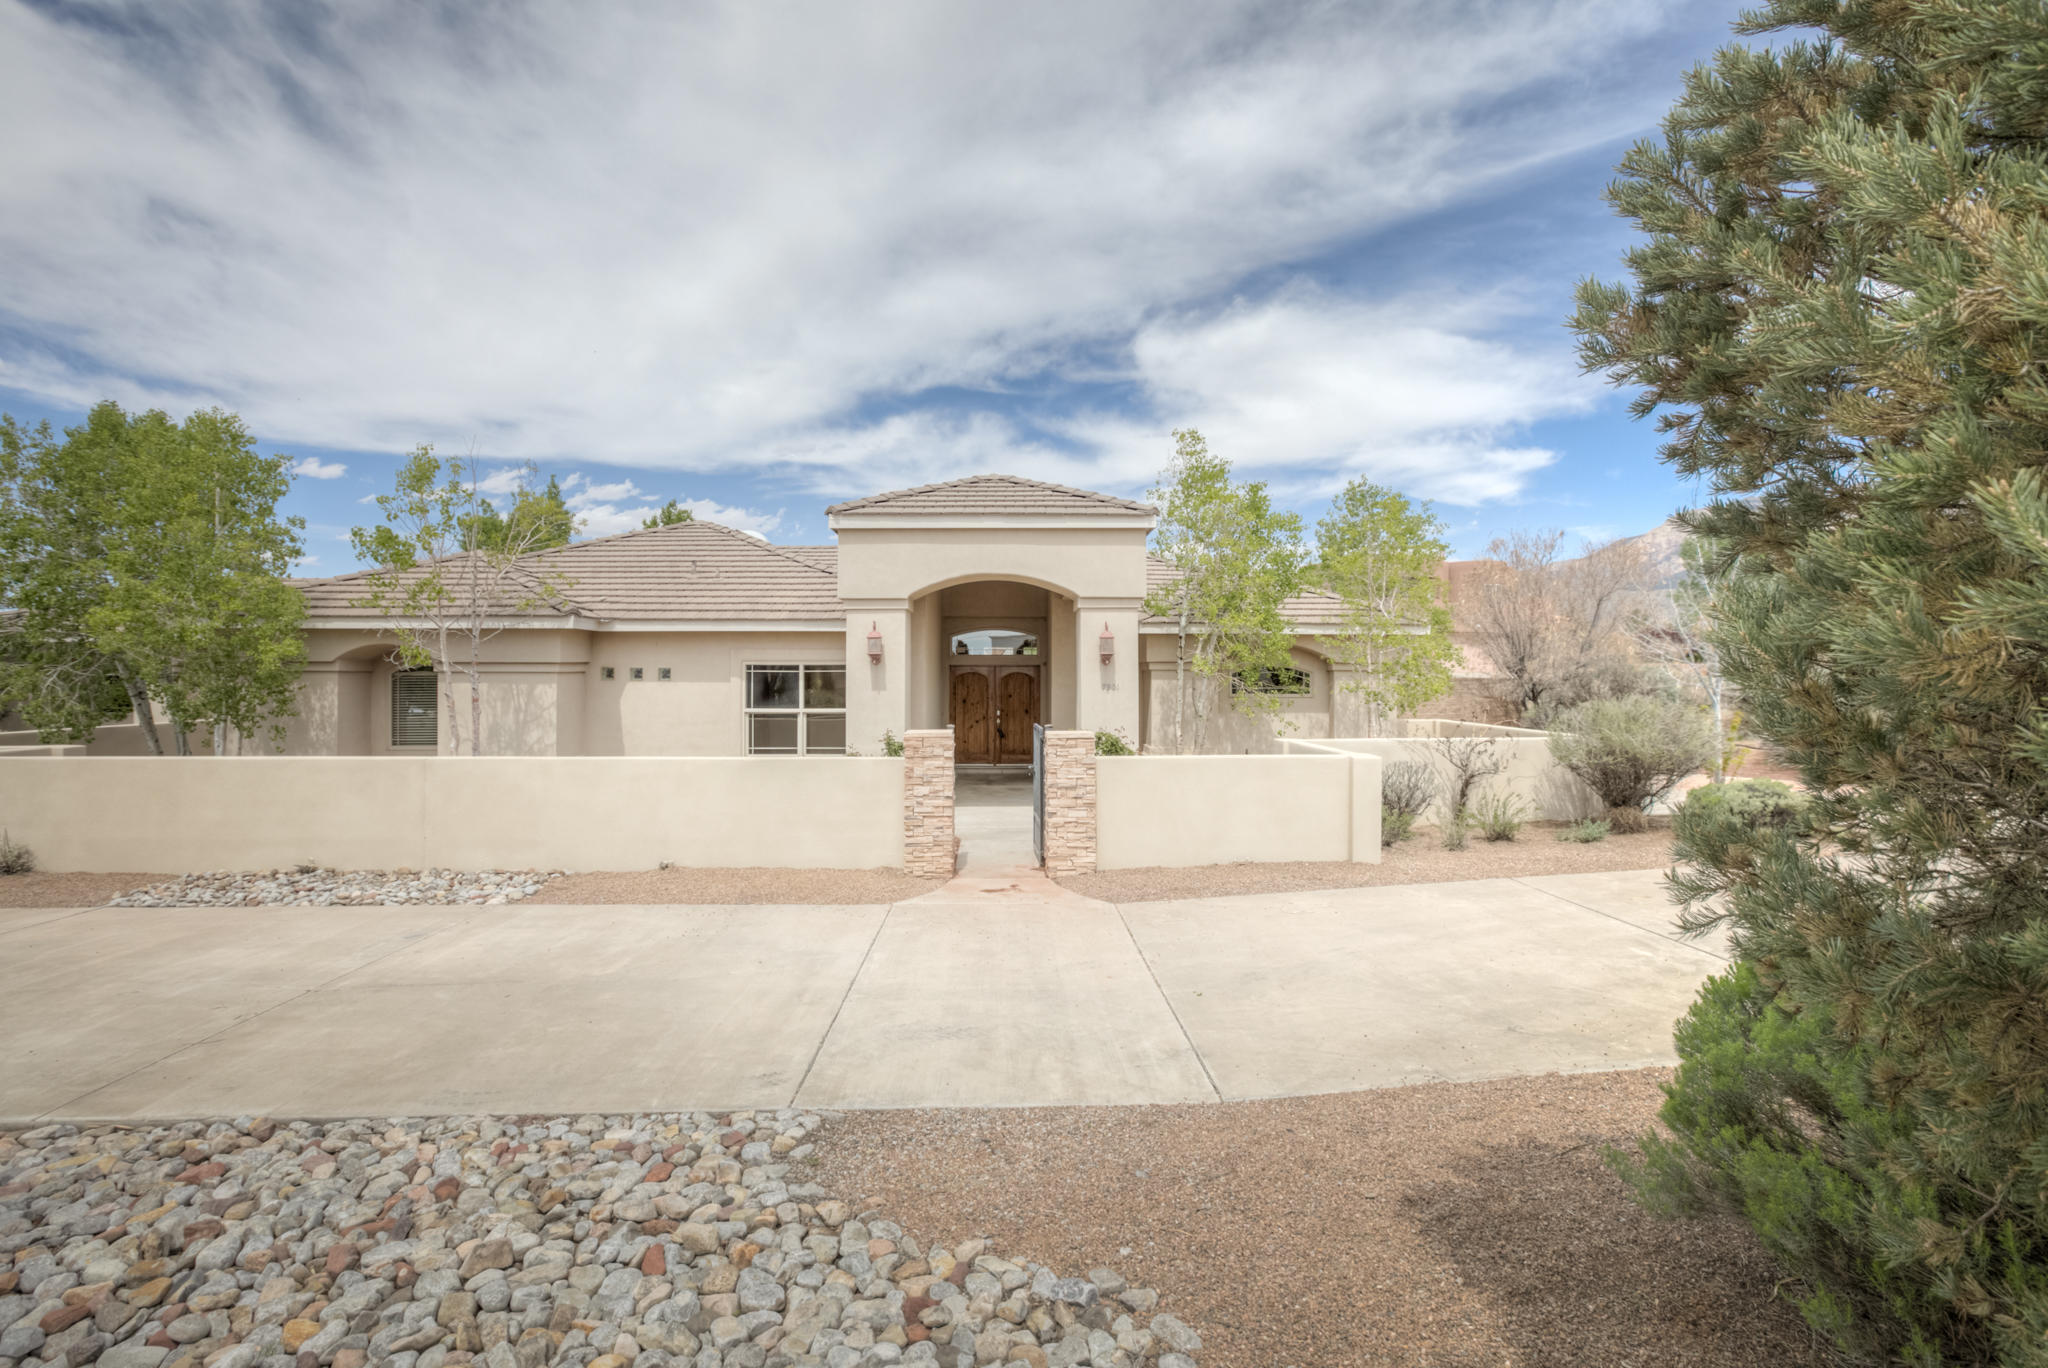 This one checks all the boxes!  Amazing single story, 4 bedroom, swimming pool and close to La Cueva High School.  Pull up into the concrete Horseshoe Drive and park in the 3 car, fully finished garage.  Nicely landscaped courtyard welcomes guests.  Spacious master with backyard access to the pool and hot tub.  expansive concrete work makes this backyard usable and easy to care for.  Home has 3 full bathrooms.  New paint and carpet throughout make this ready for a quick close.  Call or come by today!